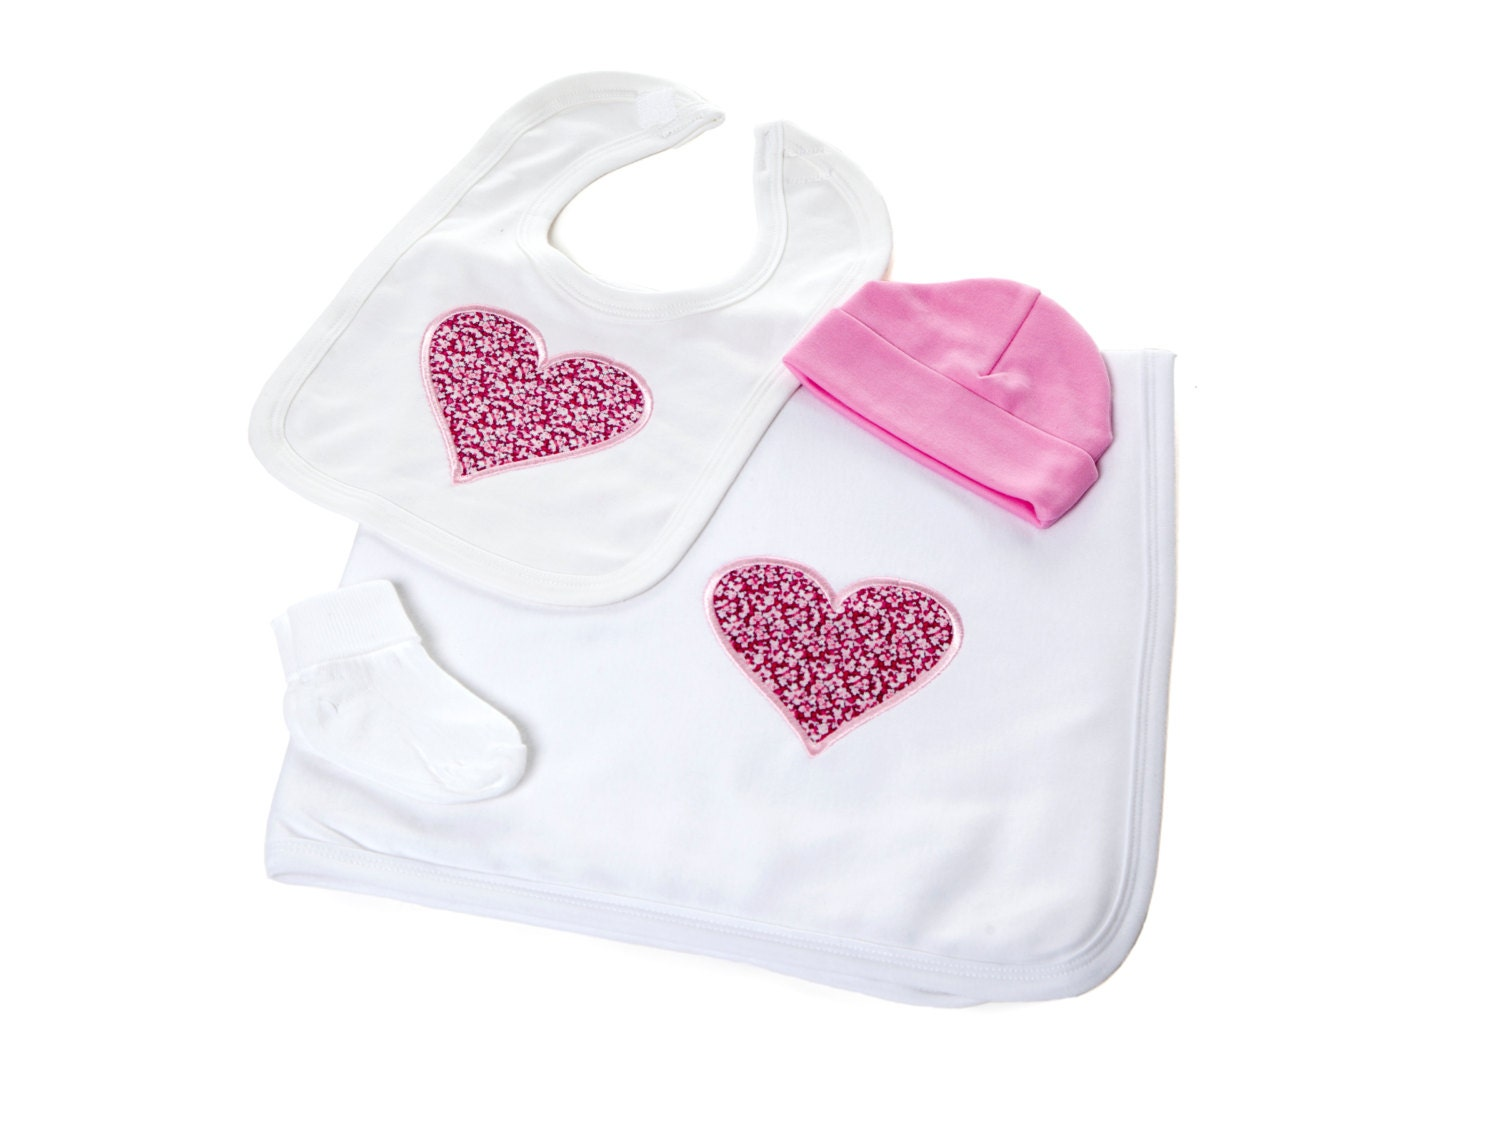 Baby Gift Set  featuring Pink Pepper Liberty Heart  the perfect baby girl gift!